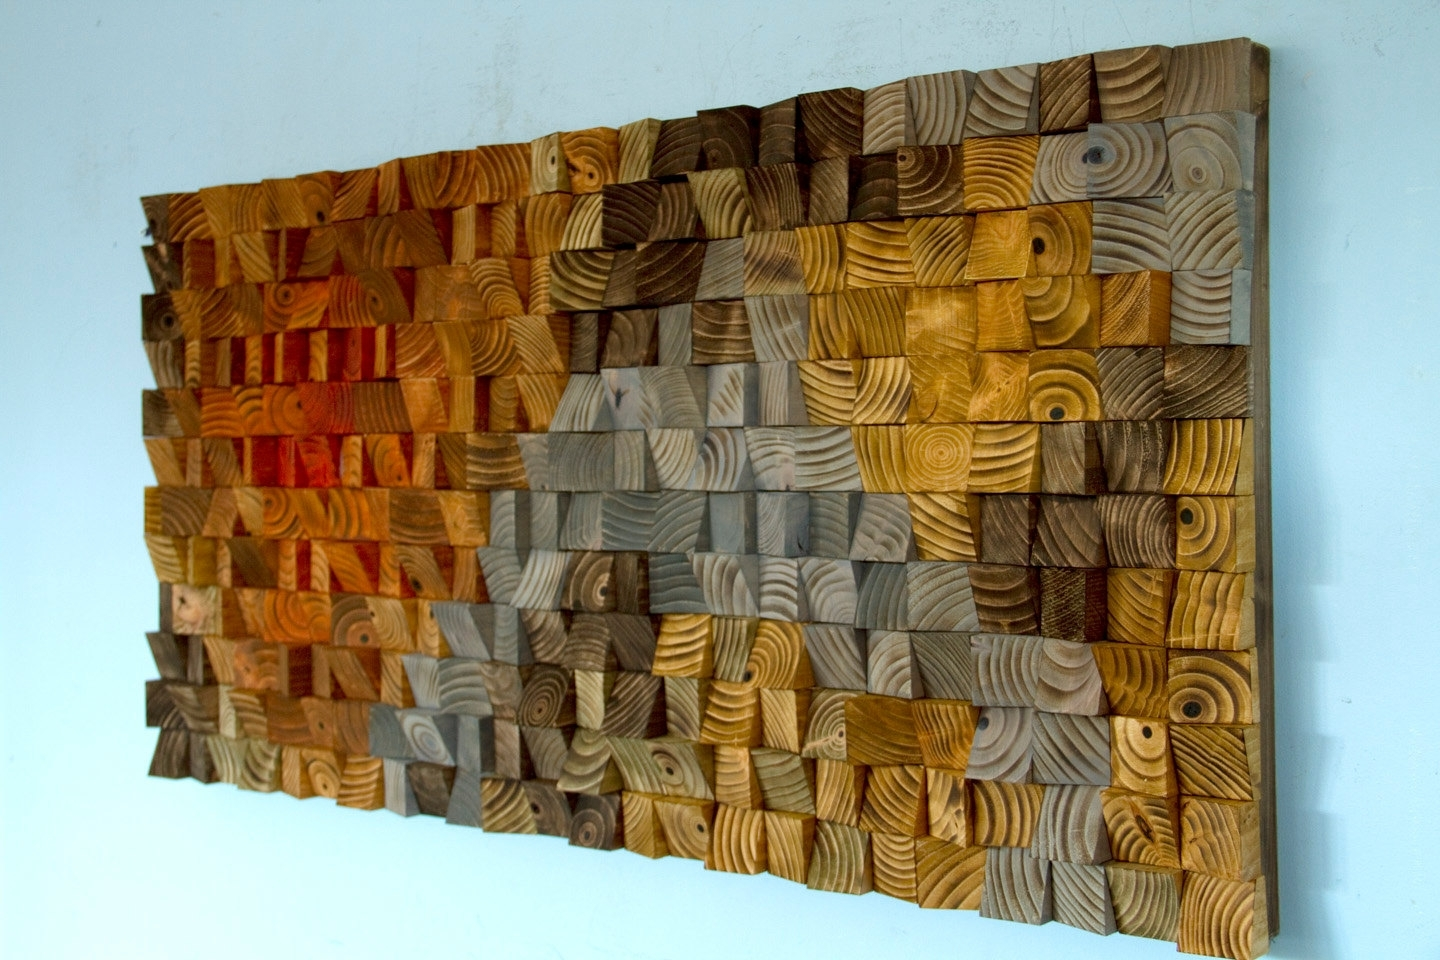 Large Rustic Art, Wood Wall Sculpture, Abstract Painting On Wood within Most Recently Released Large Rustic Wall Art